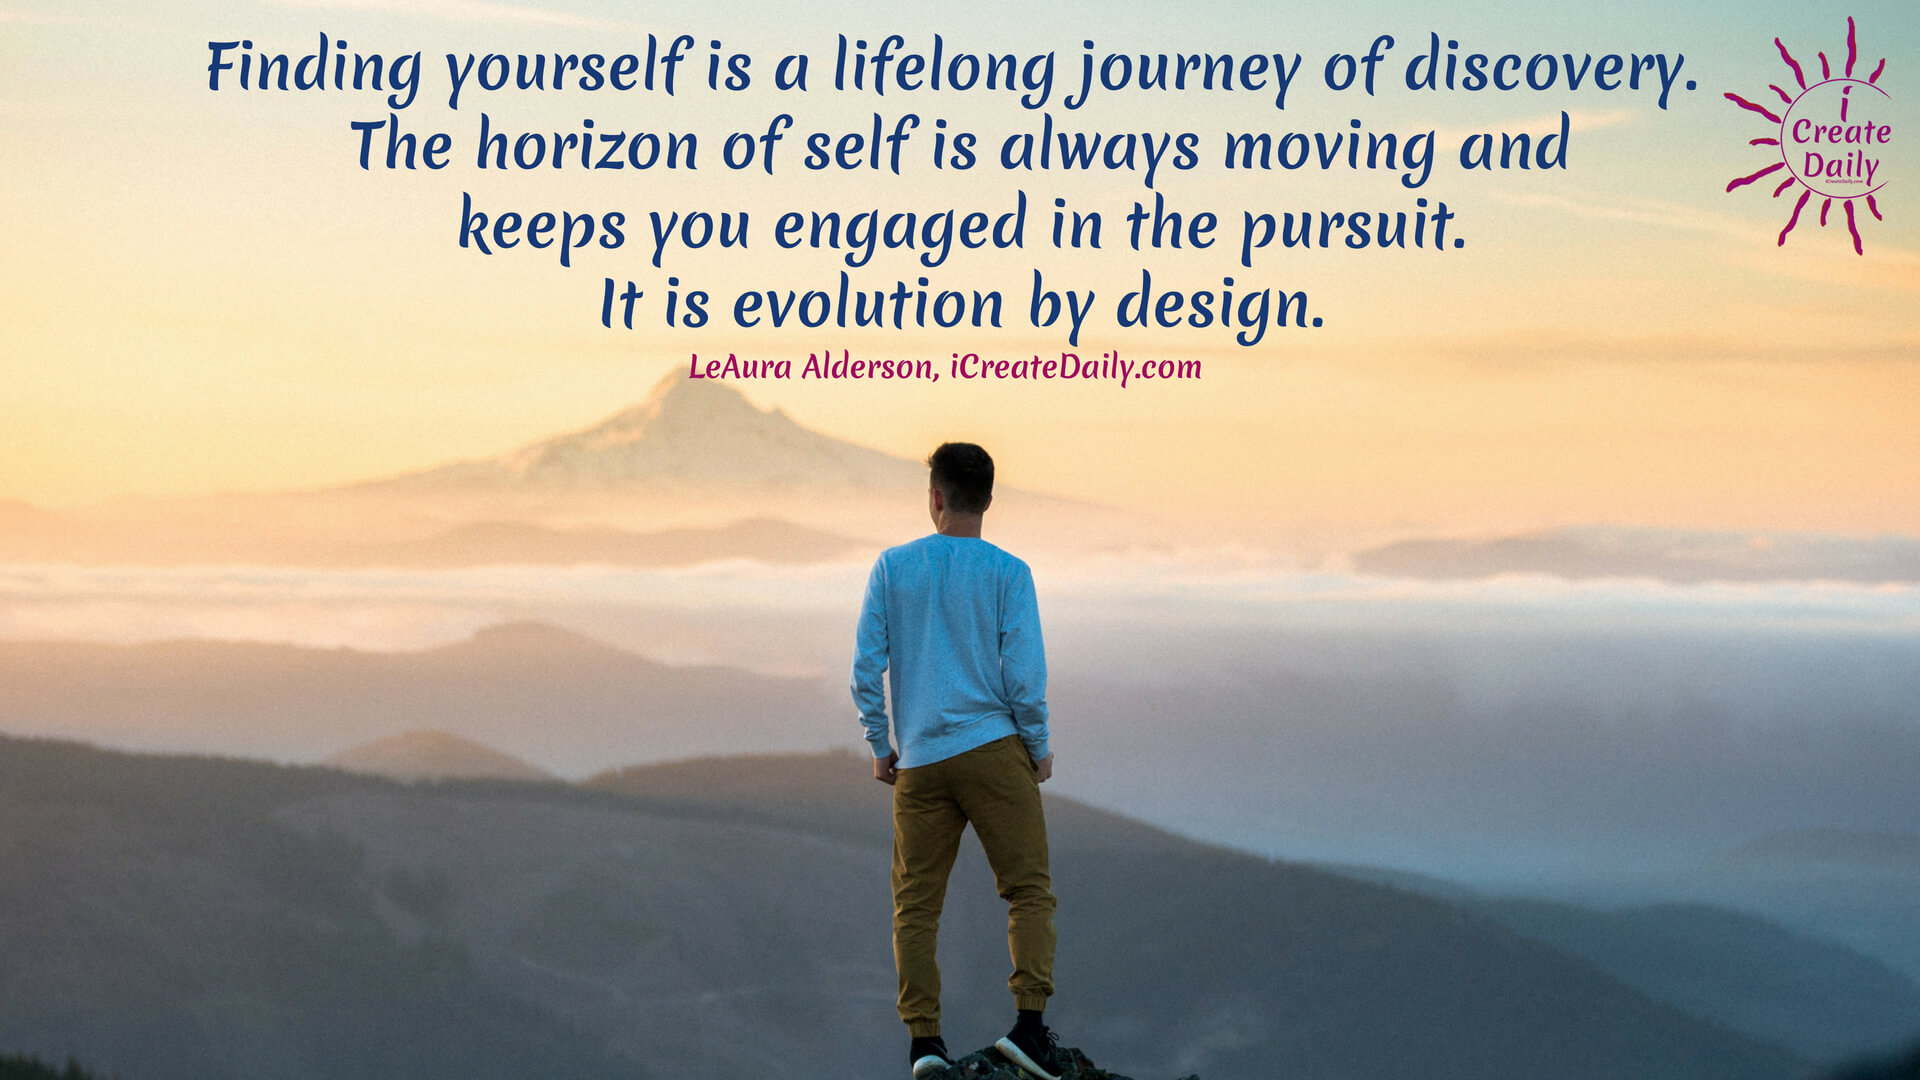 Finding Yourself Is a Lifelong Journey of Discovery